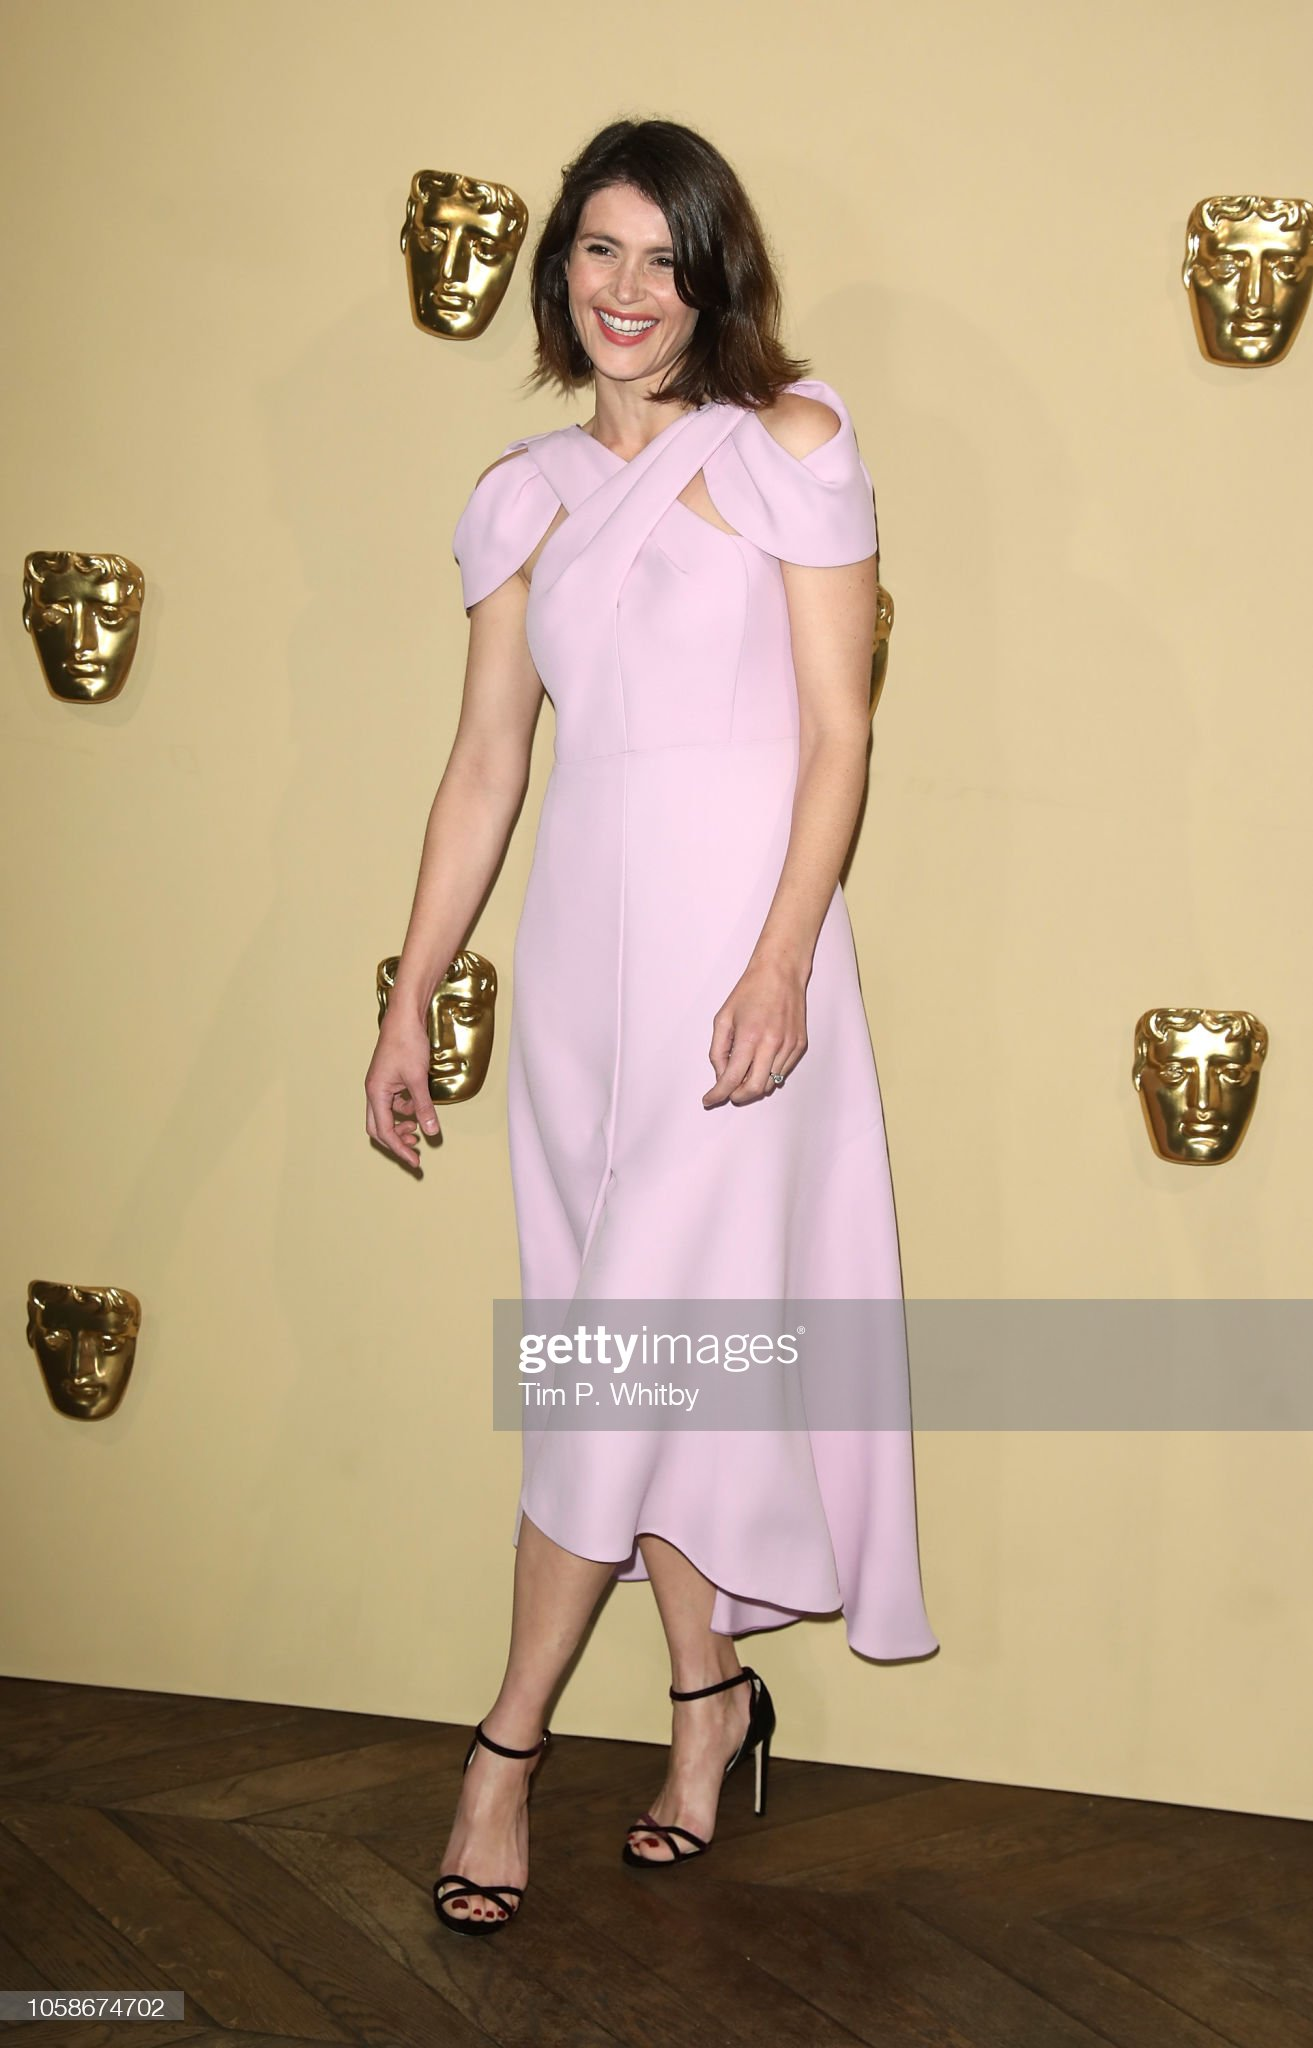 gemma-arterton-attends-the-bafta-breakthrough-brits-reception-at-on-picture-id1058674702